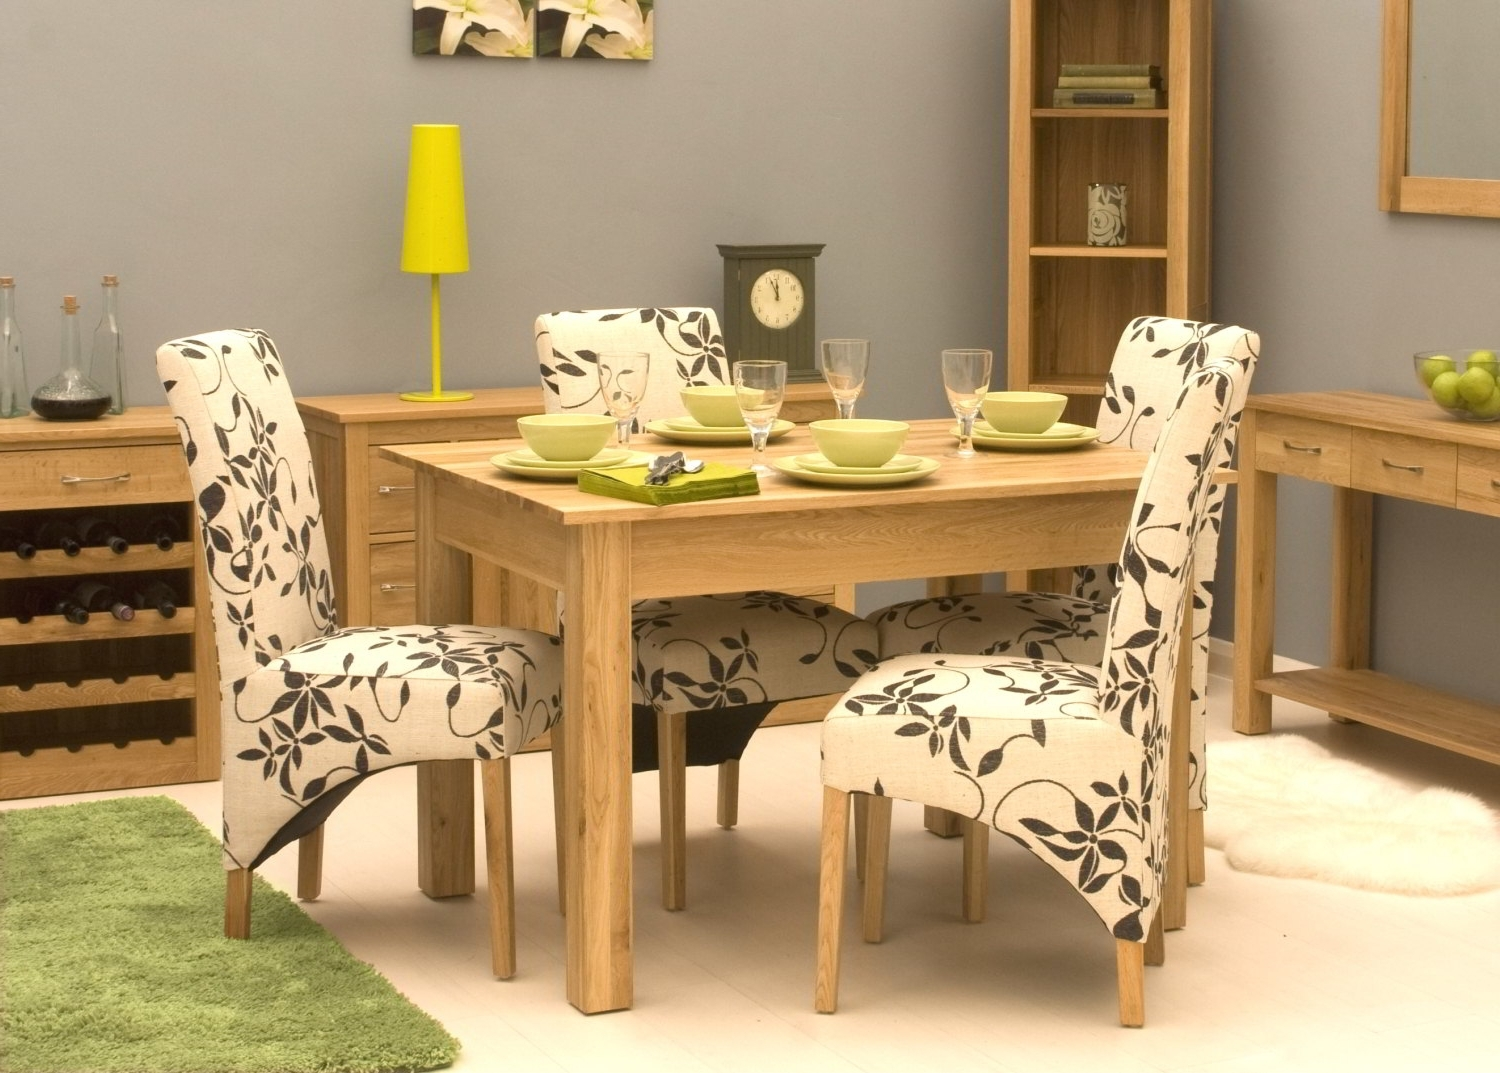 Ebay for 4 Seat Dining Tables